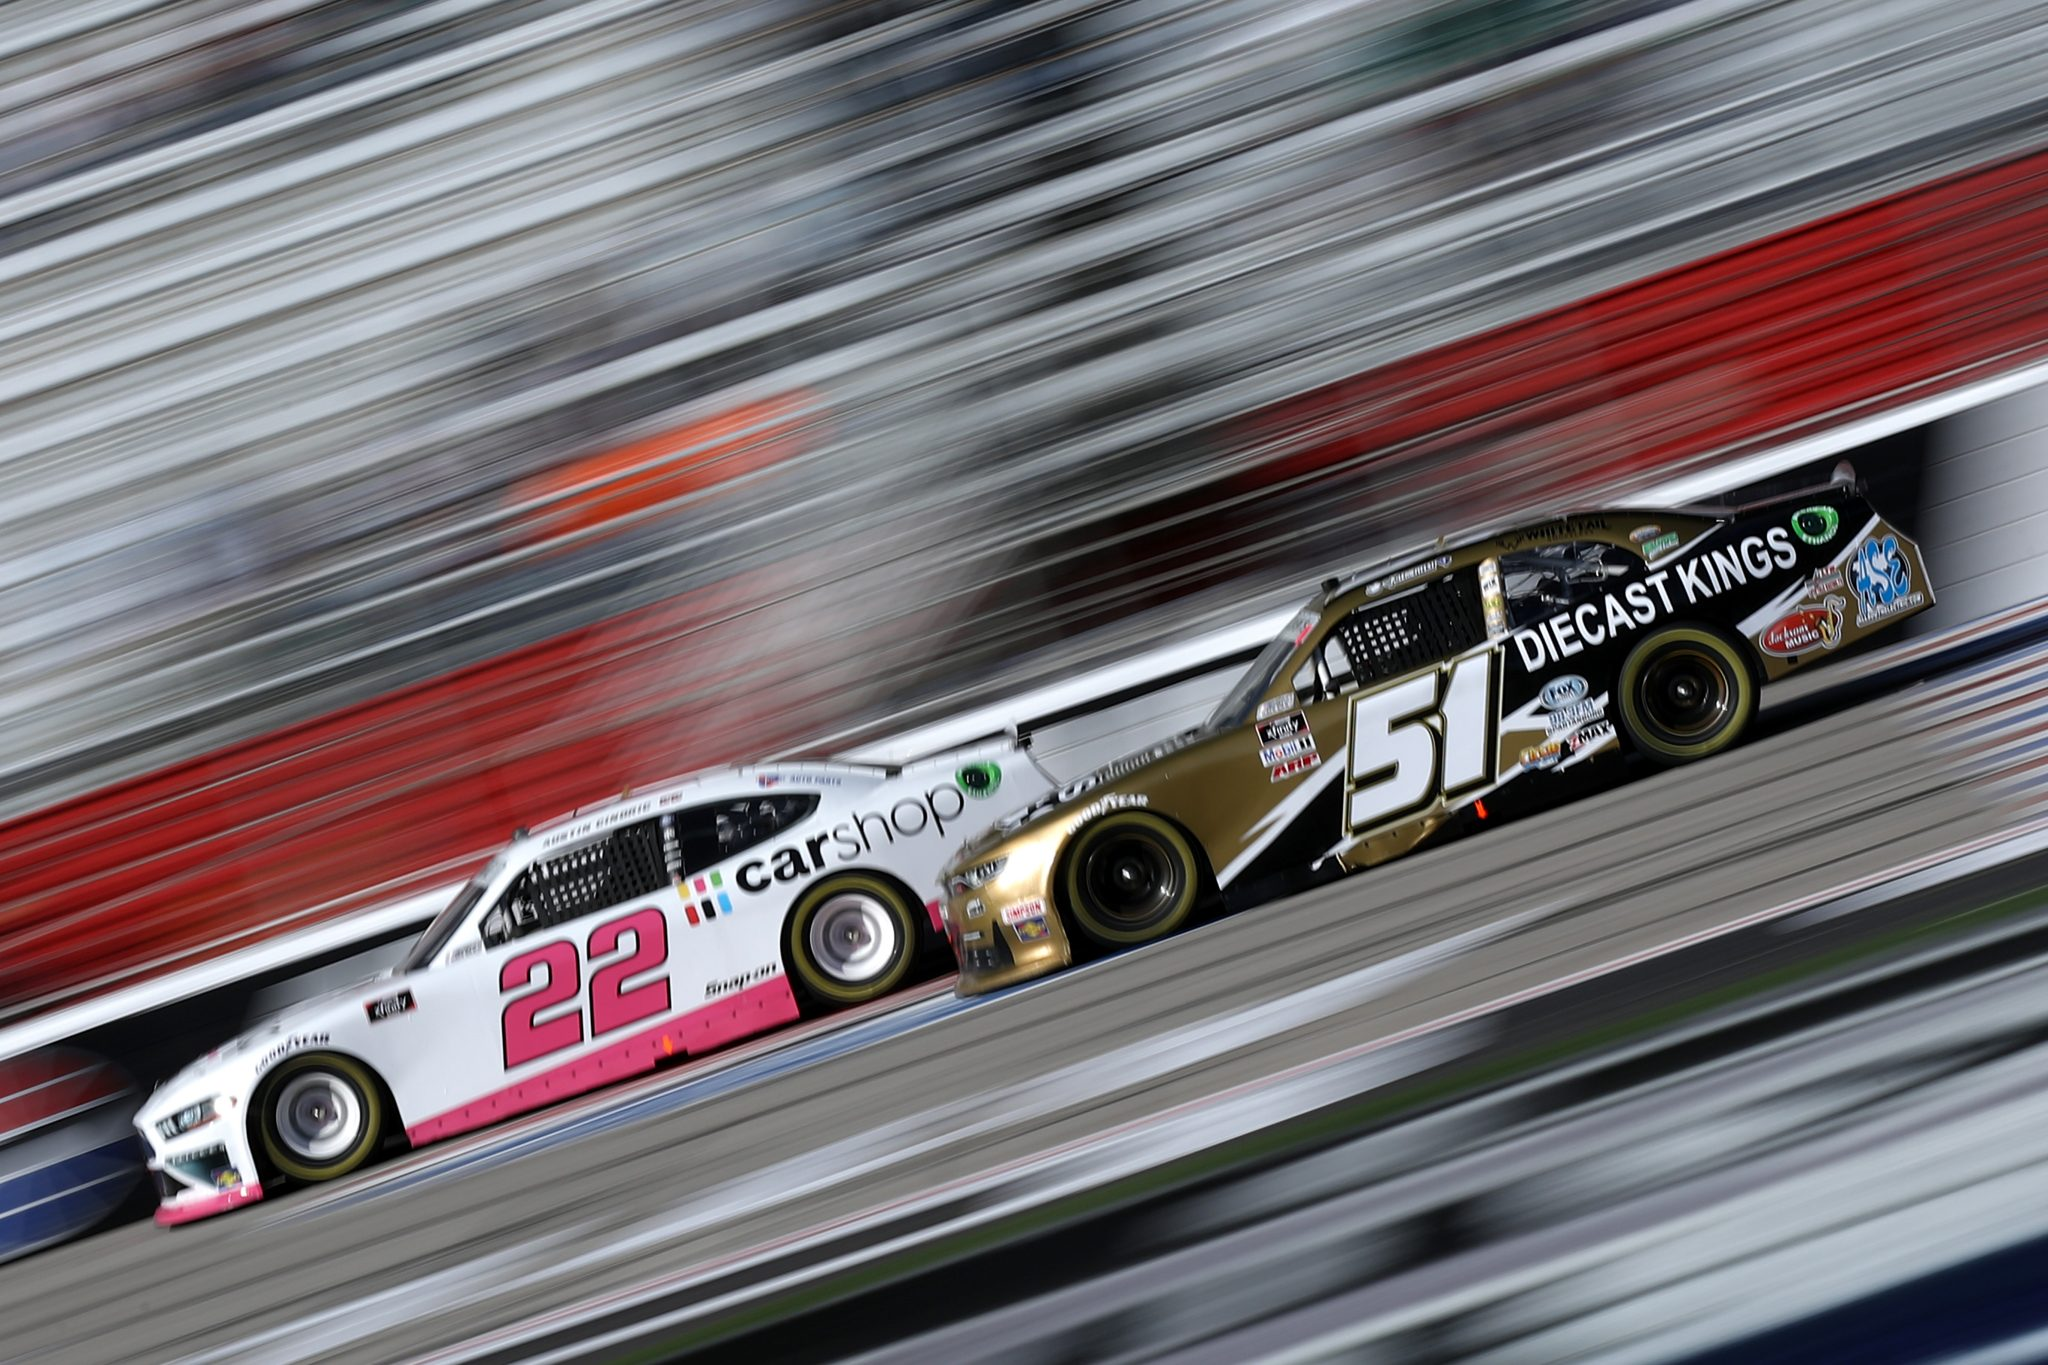 HAMPTON, GEORGIA - MARCH 20: Jeremy Clements, driver of the #51 Diecast Kings Chevrolet, and Austin Cindric, driver of the #22 Car Shop Ford, race during the NASCAR Xfinity Series EchoPark 250 at Atlanta Motor Speedway on March 20, 2021 in Hampton, Georgia. (Photo by Sean Gardner/Getty Images) | Getty Images